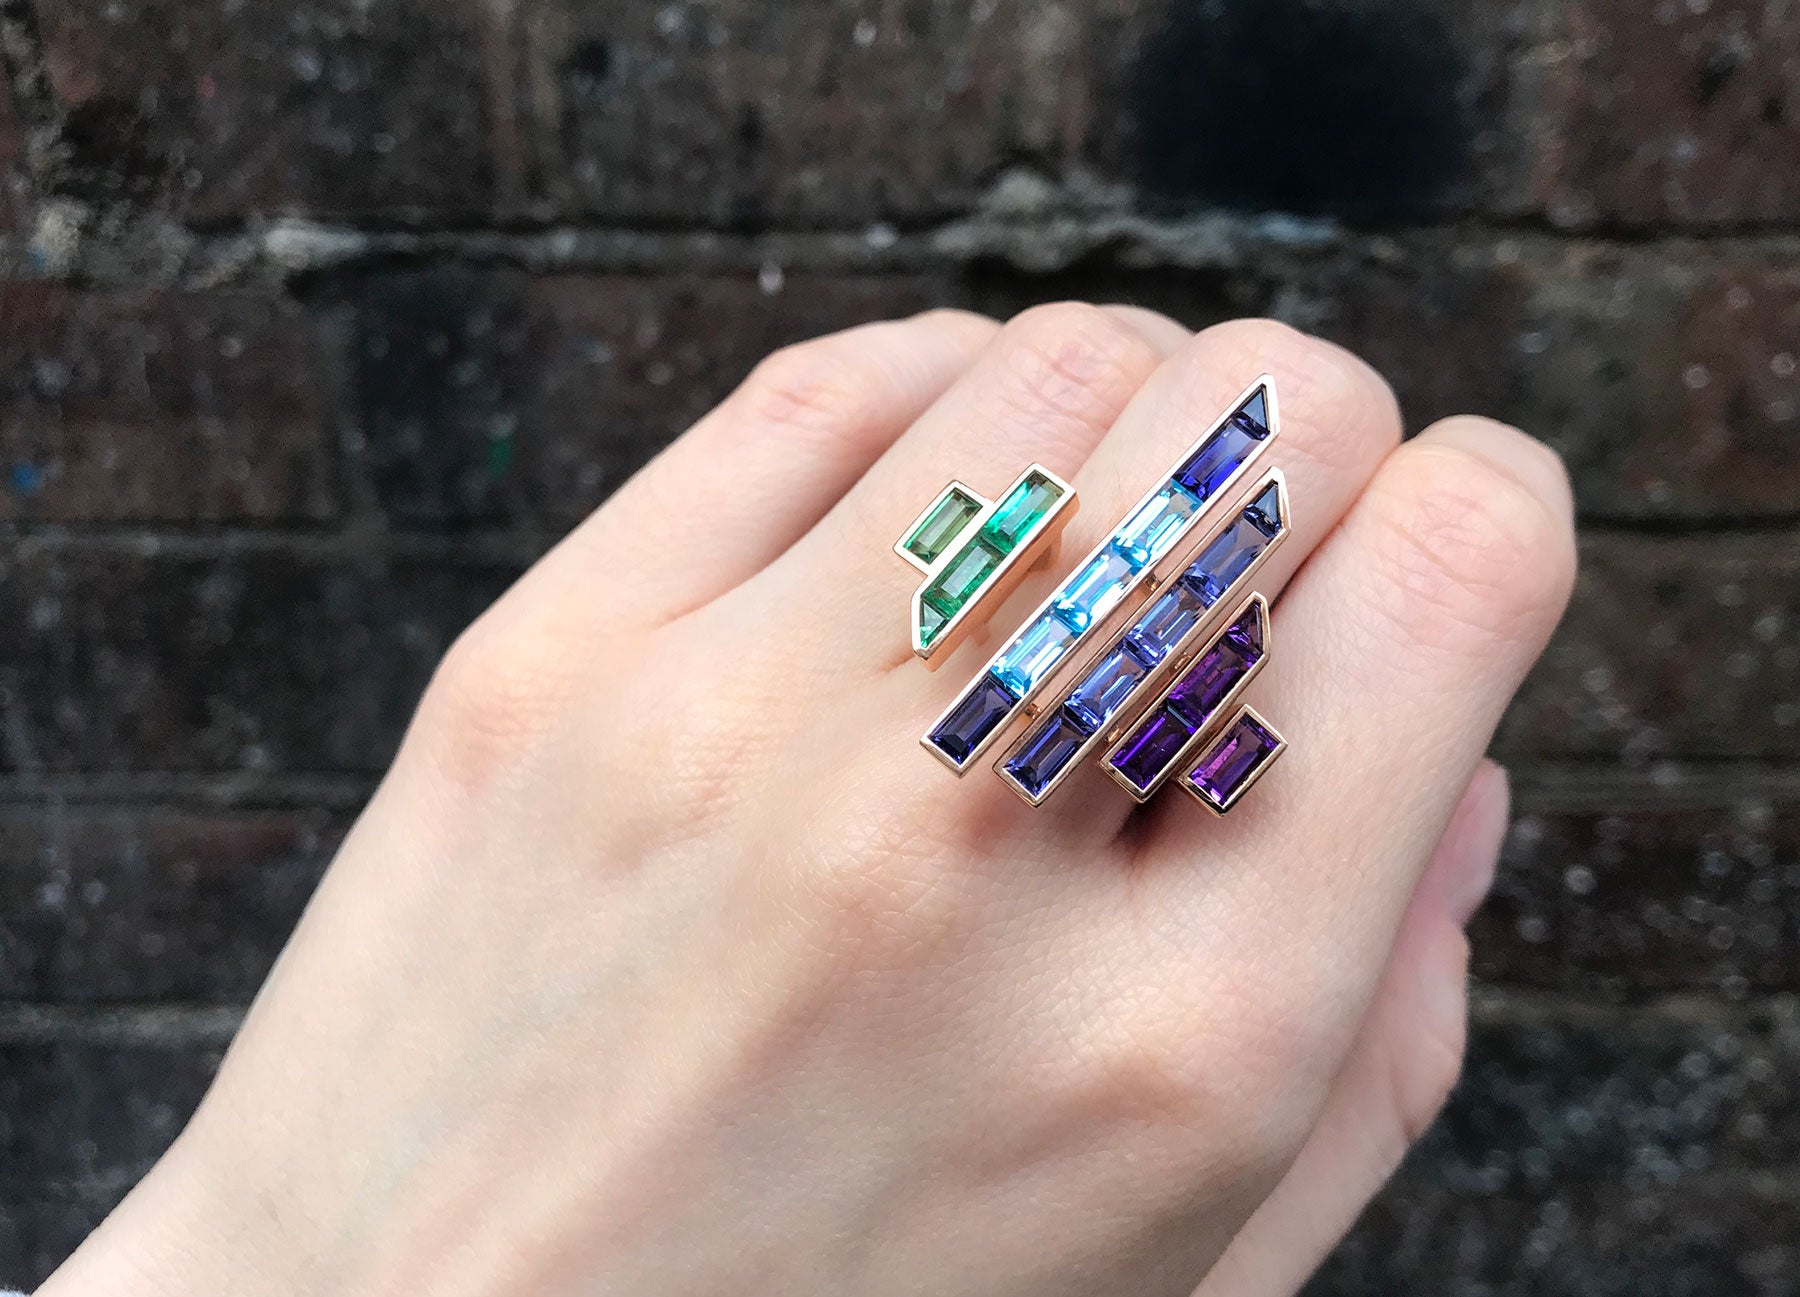 Blade runner rainbow ring in 18K rose gold by Tomasz Donocik worn view 2